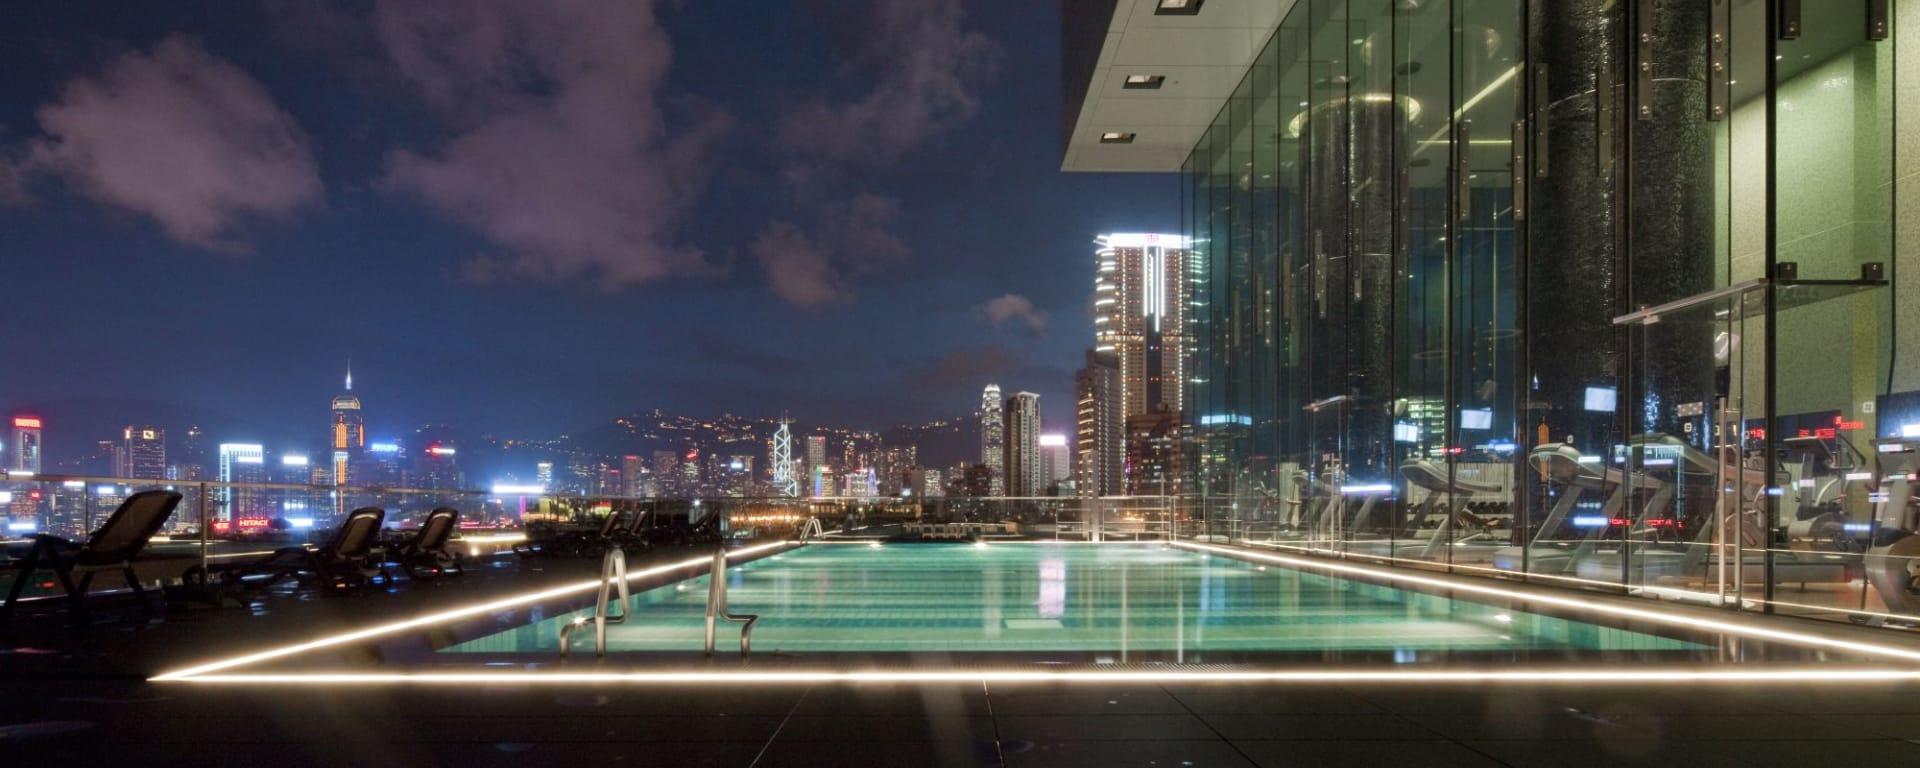 Hotel ICON in Hong Kong: Outdoor Swimming Pool | by night